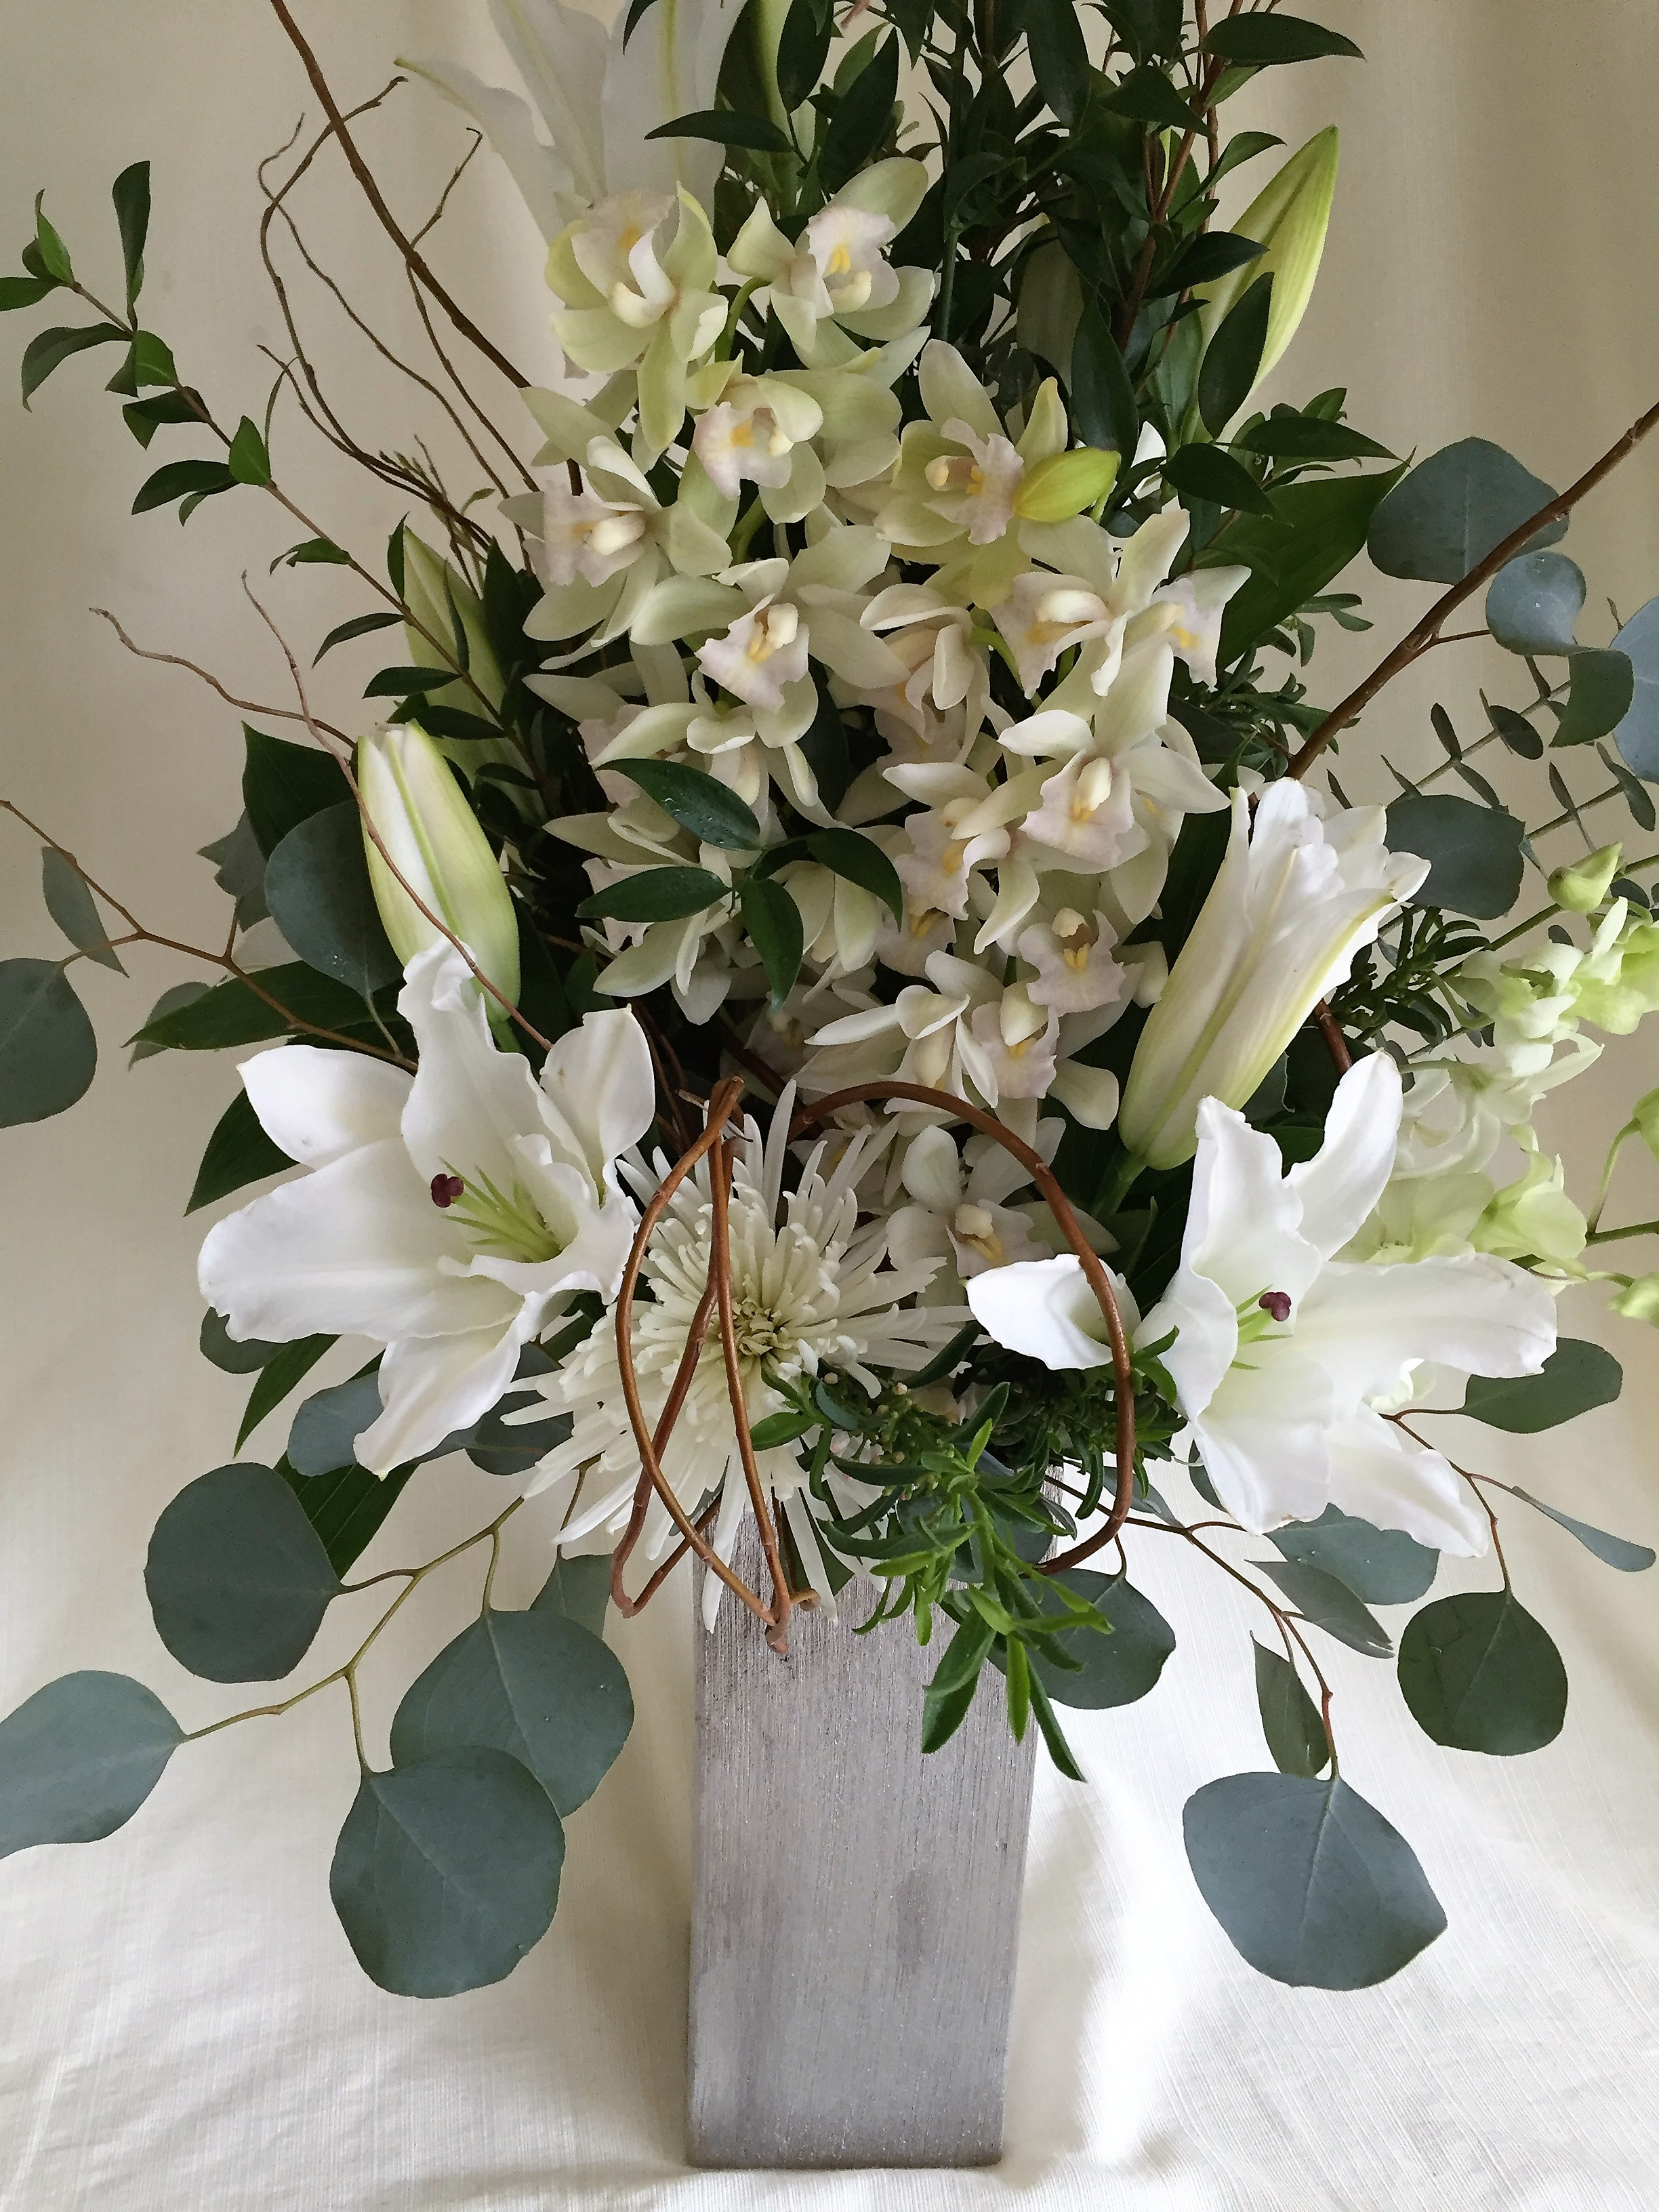 #19 White Cymbidium vase arrangement